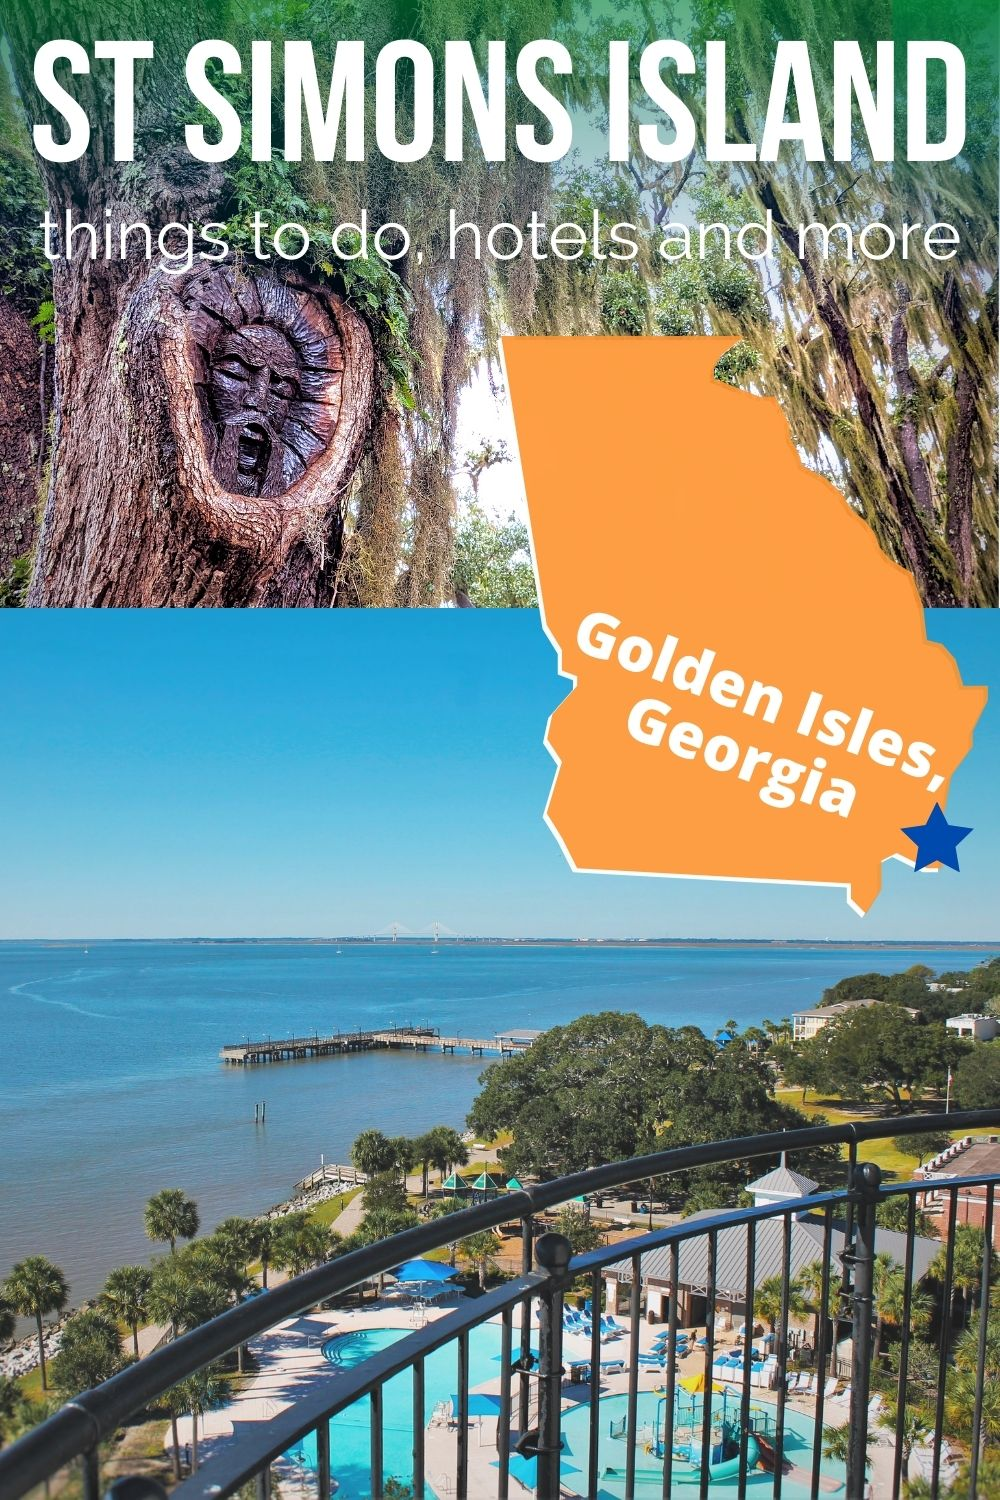 St Simons Island, Georgia is an easy, budget friendly getaway from Jacksonville or Atlanta. With tons of things to do, beautiful beaches and lots of history, it's also a great Georgia Coast road trip stop.